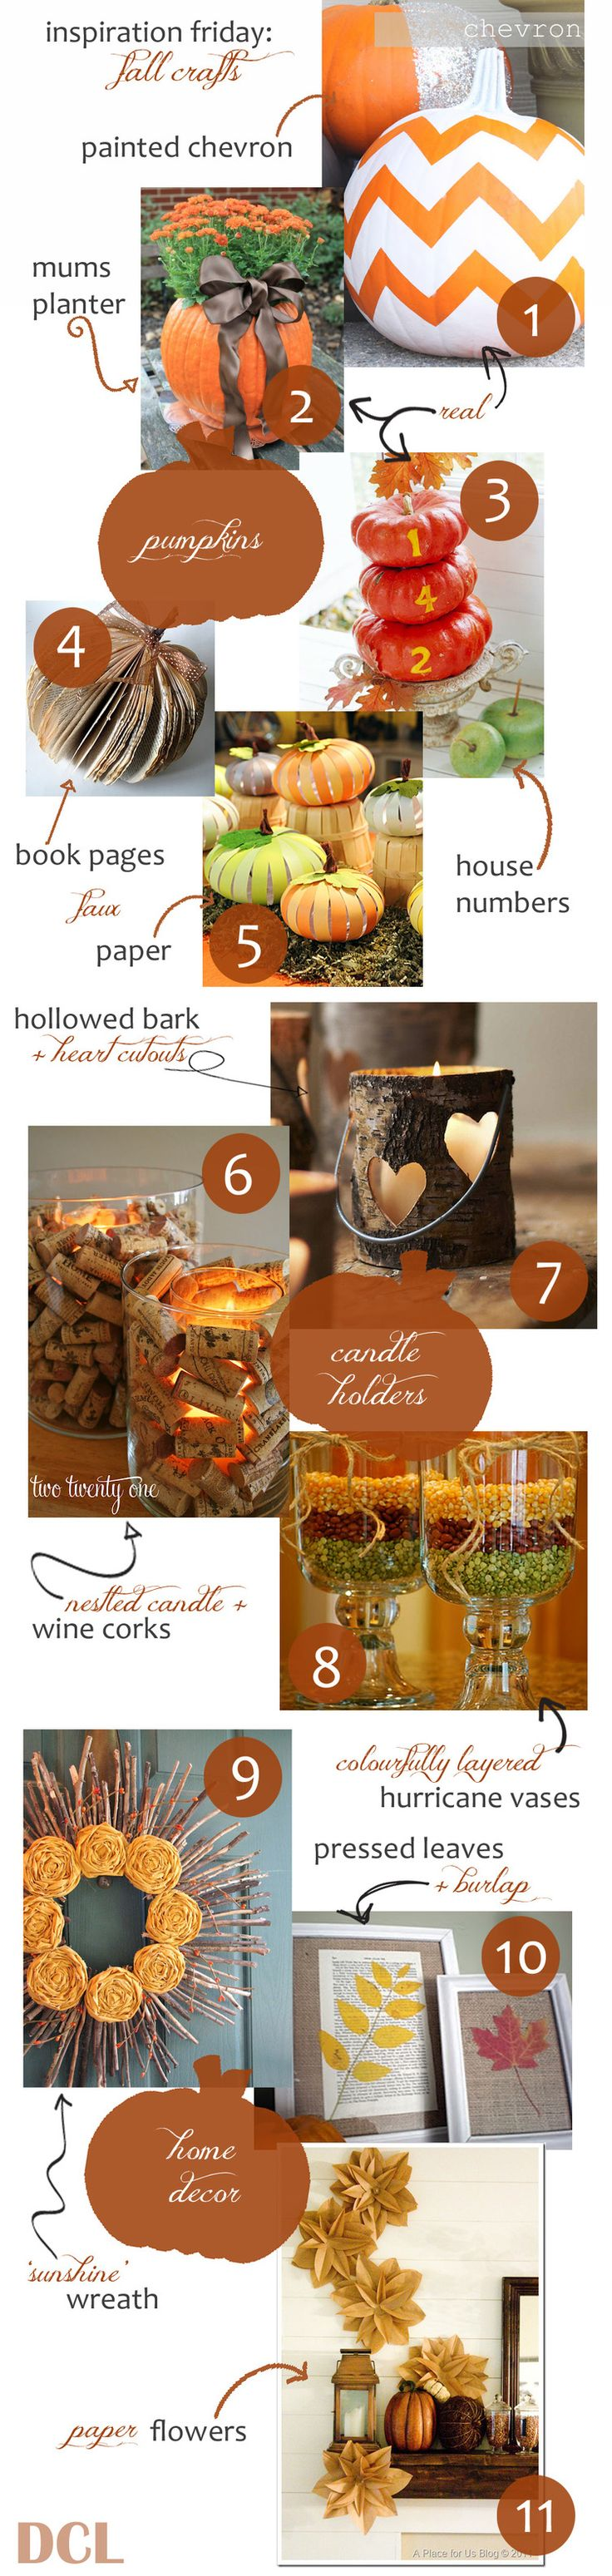 Inspiration Friday: Fall Crafts Ideas!